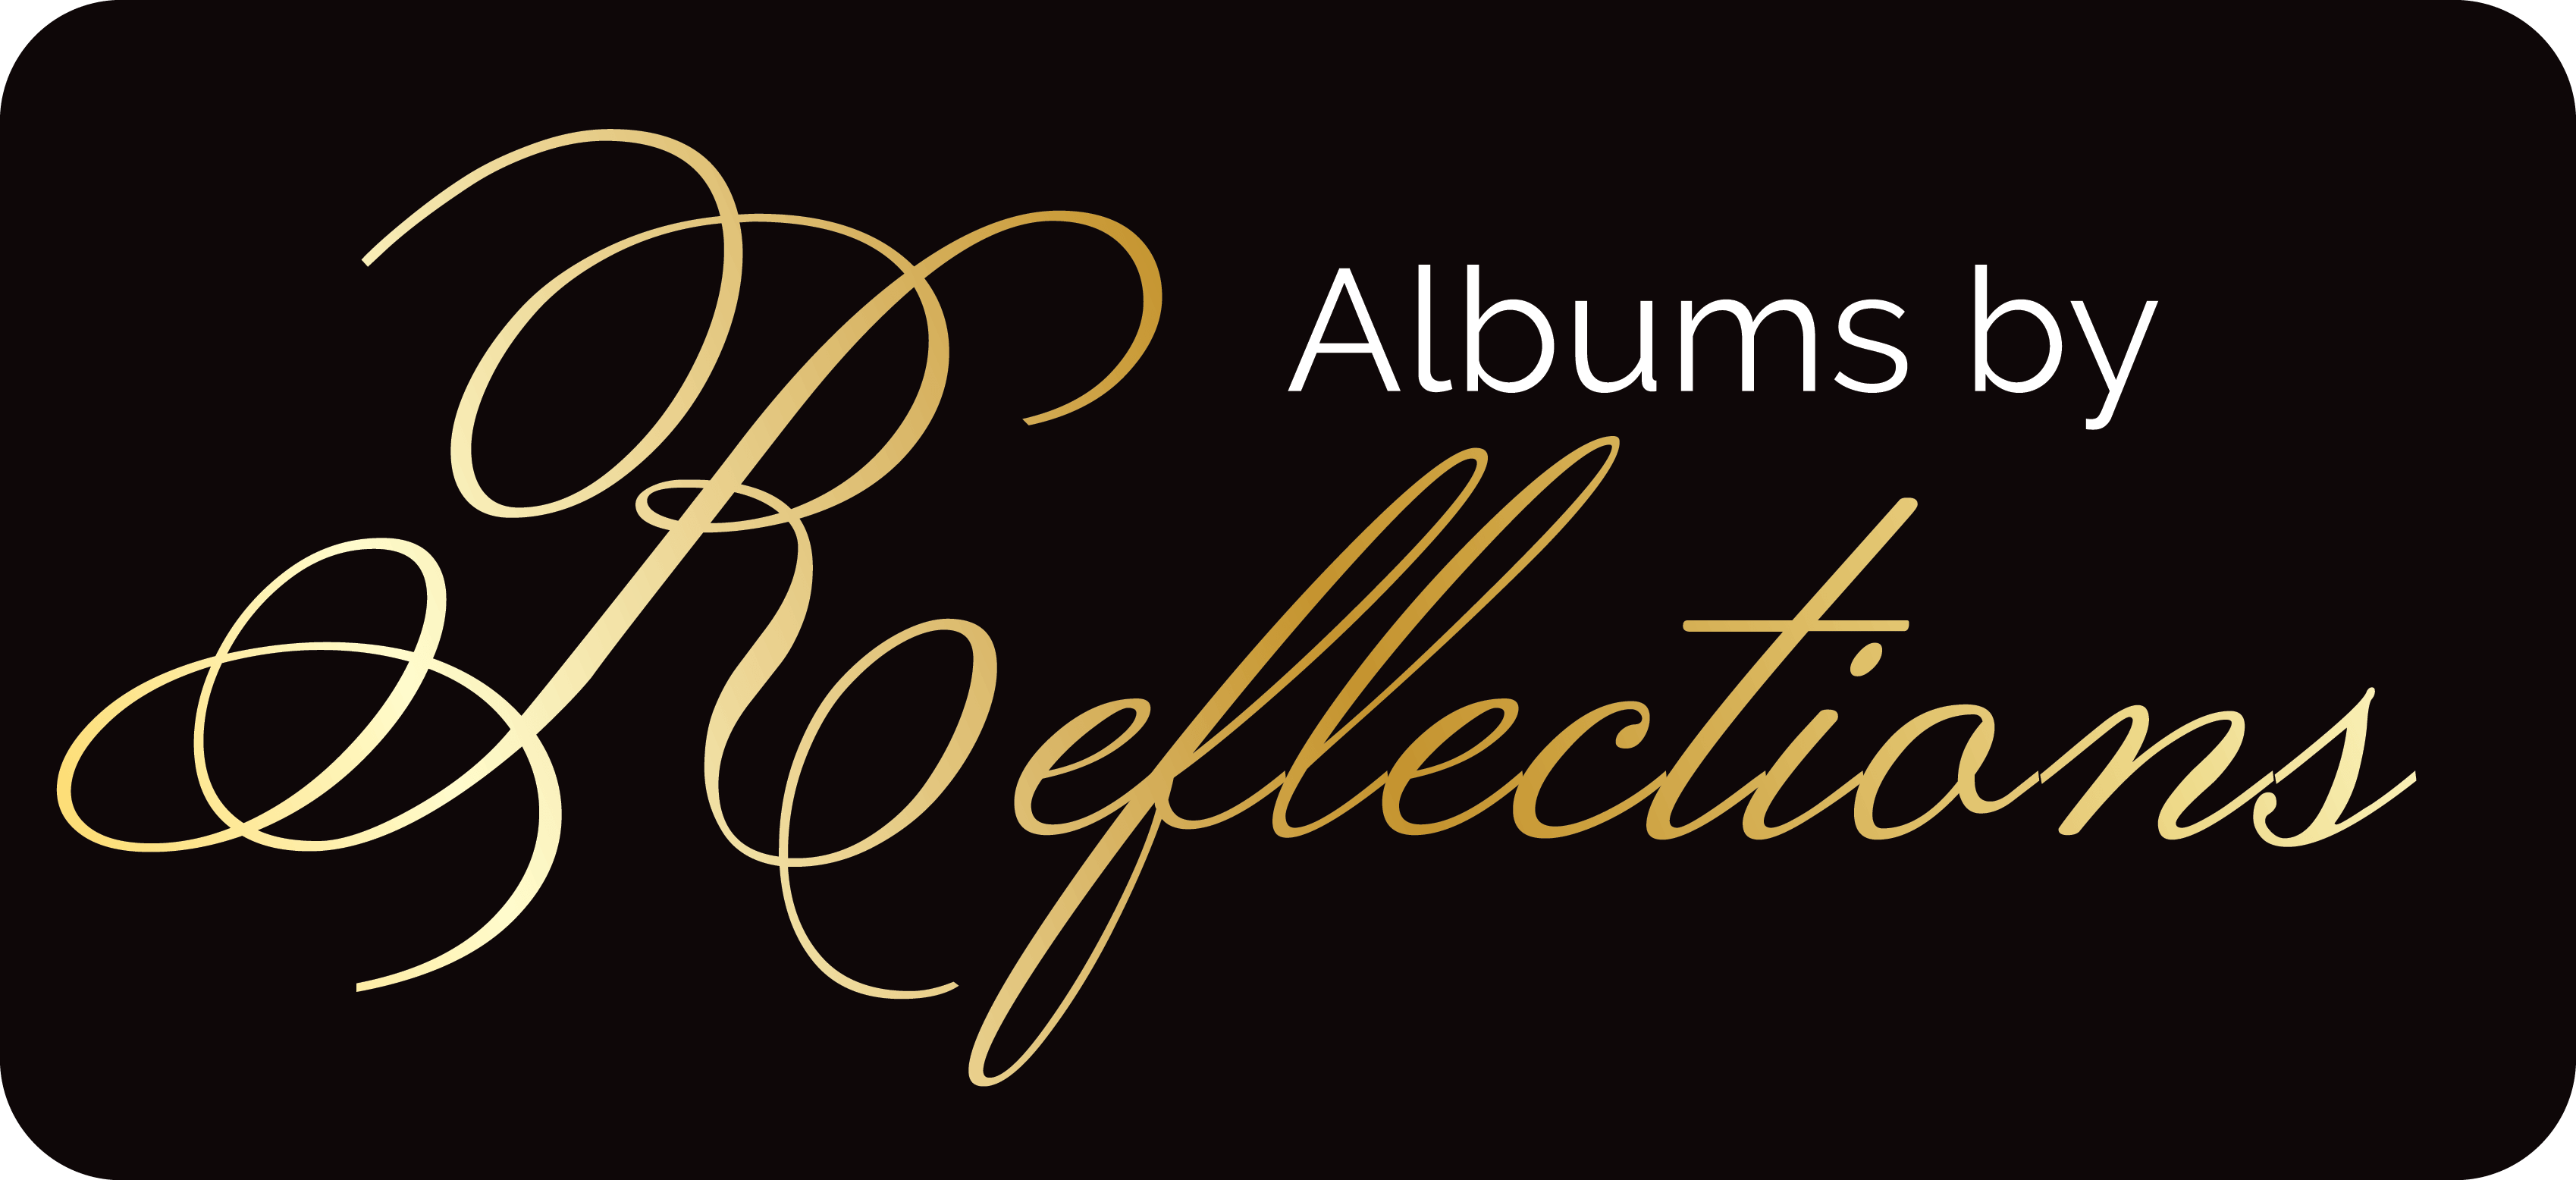 Albums by Reflections